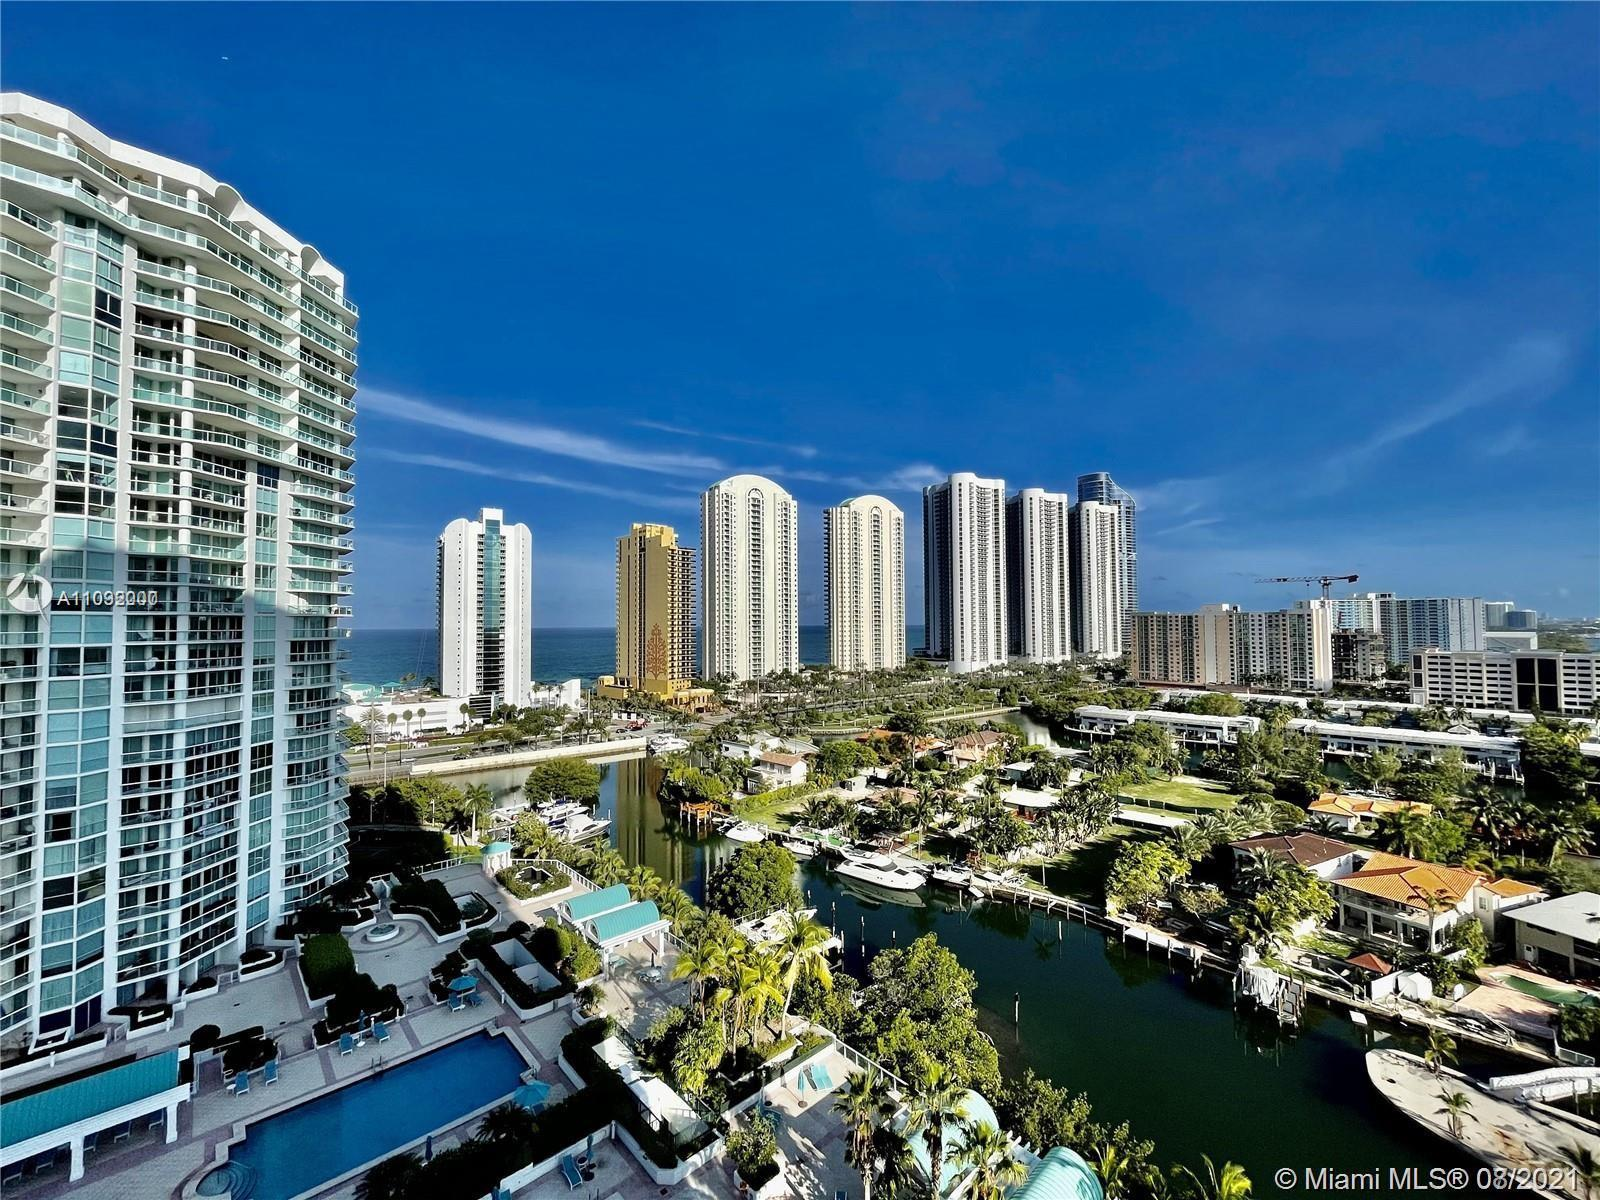 BEAUTIFUL 2BD/2BTH+ DEN. BEST DEAL AND LINE IN THE BUILDING! STUNNING VIEWS OF OCEAN, INTRACOASTAL &